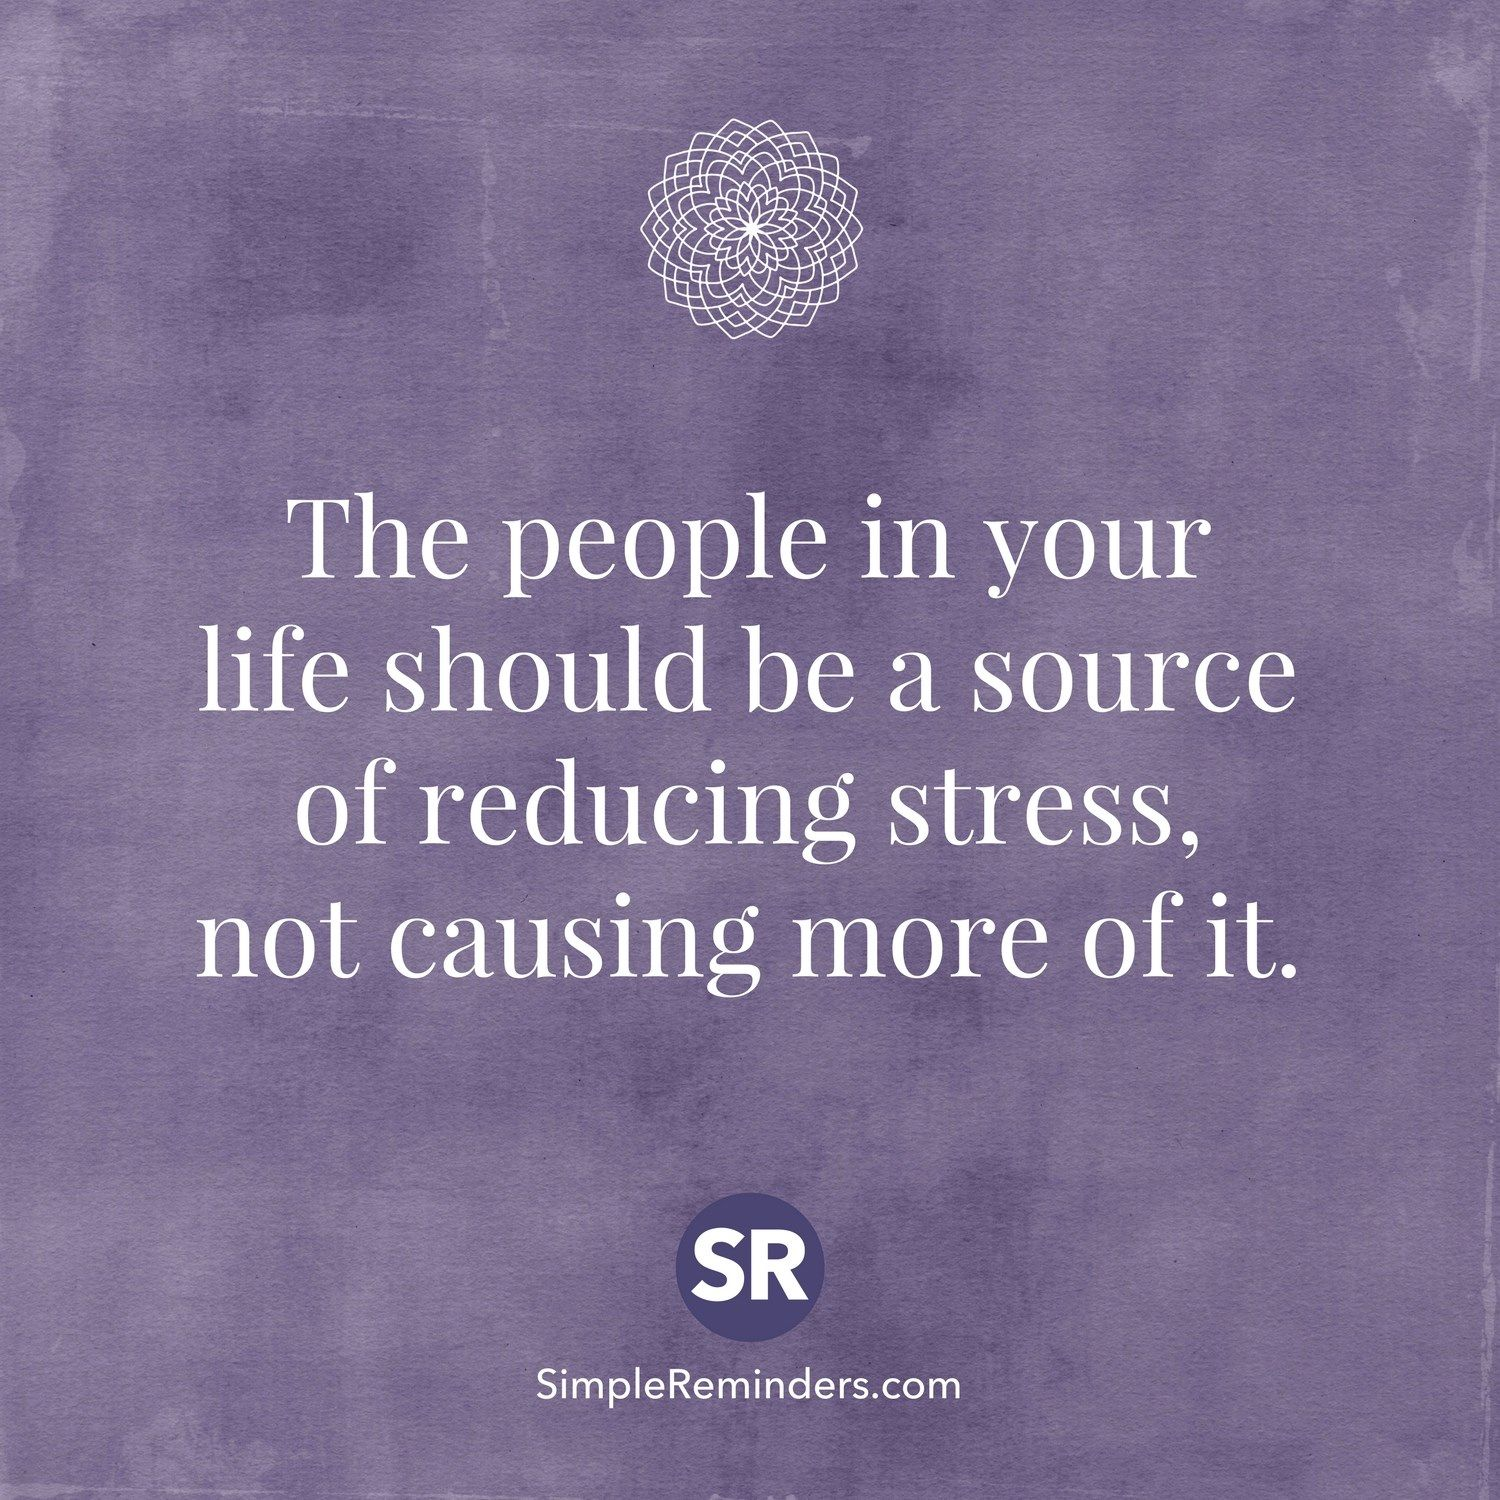 The People In Your Life Should Be A Source Of Reducing Stress Not Causing More Of It Wisdom Quotes Words Quotes